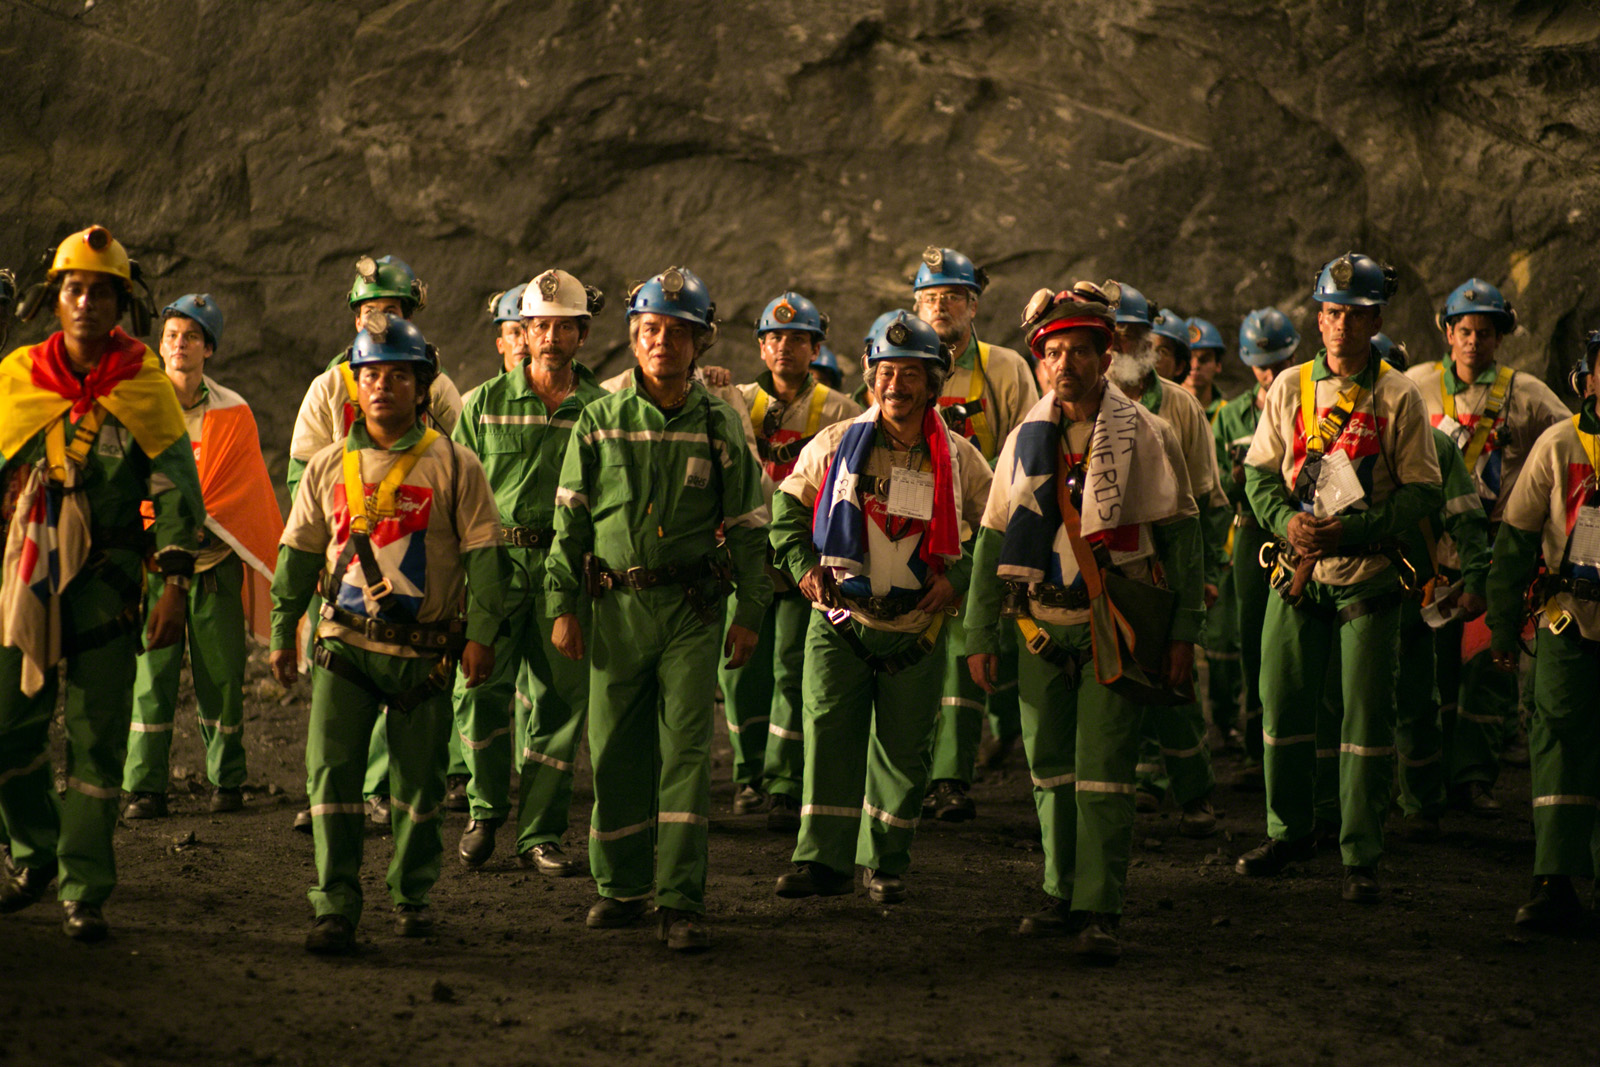 the chilean miners los 33 essay Chile miners rescue essay:: 9 works cited essay about chile mine - 5th august 2010, 33 chilean miners were trapped 2,000 feet underground for over two weeks.